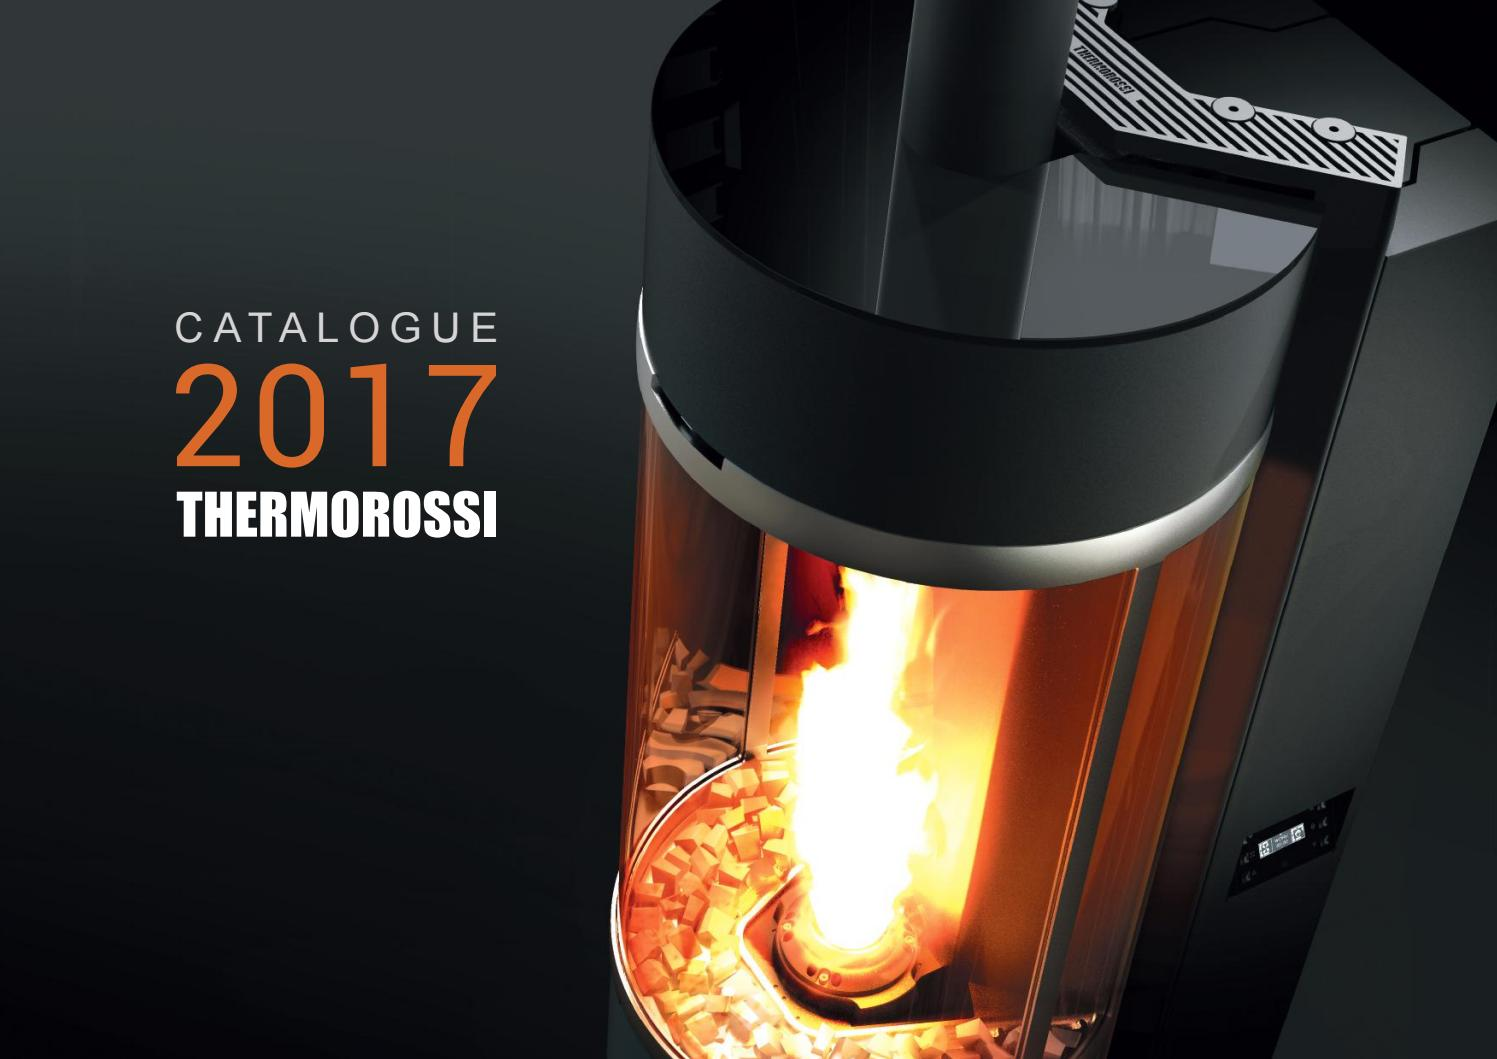 Thermorossi catalogue 2017 20160705 by dtflamme issuu for Thermorossi slimquadro idra maxi